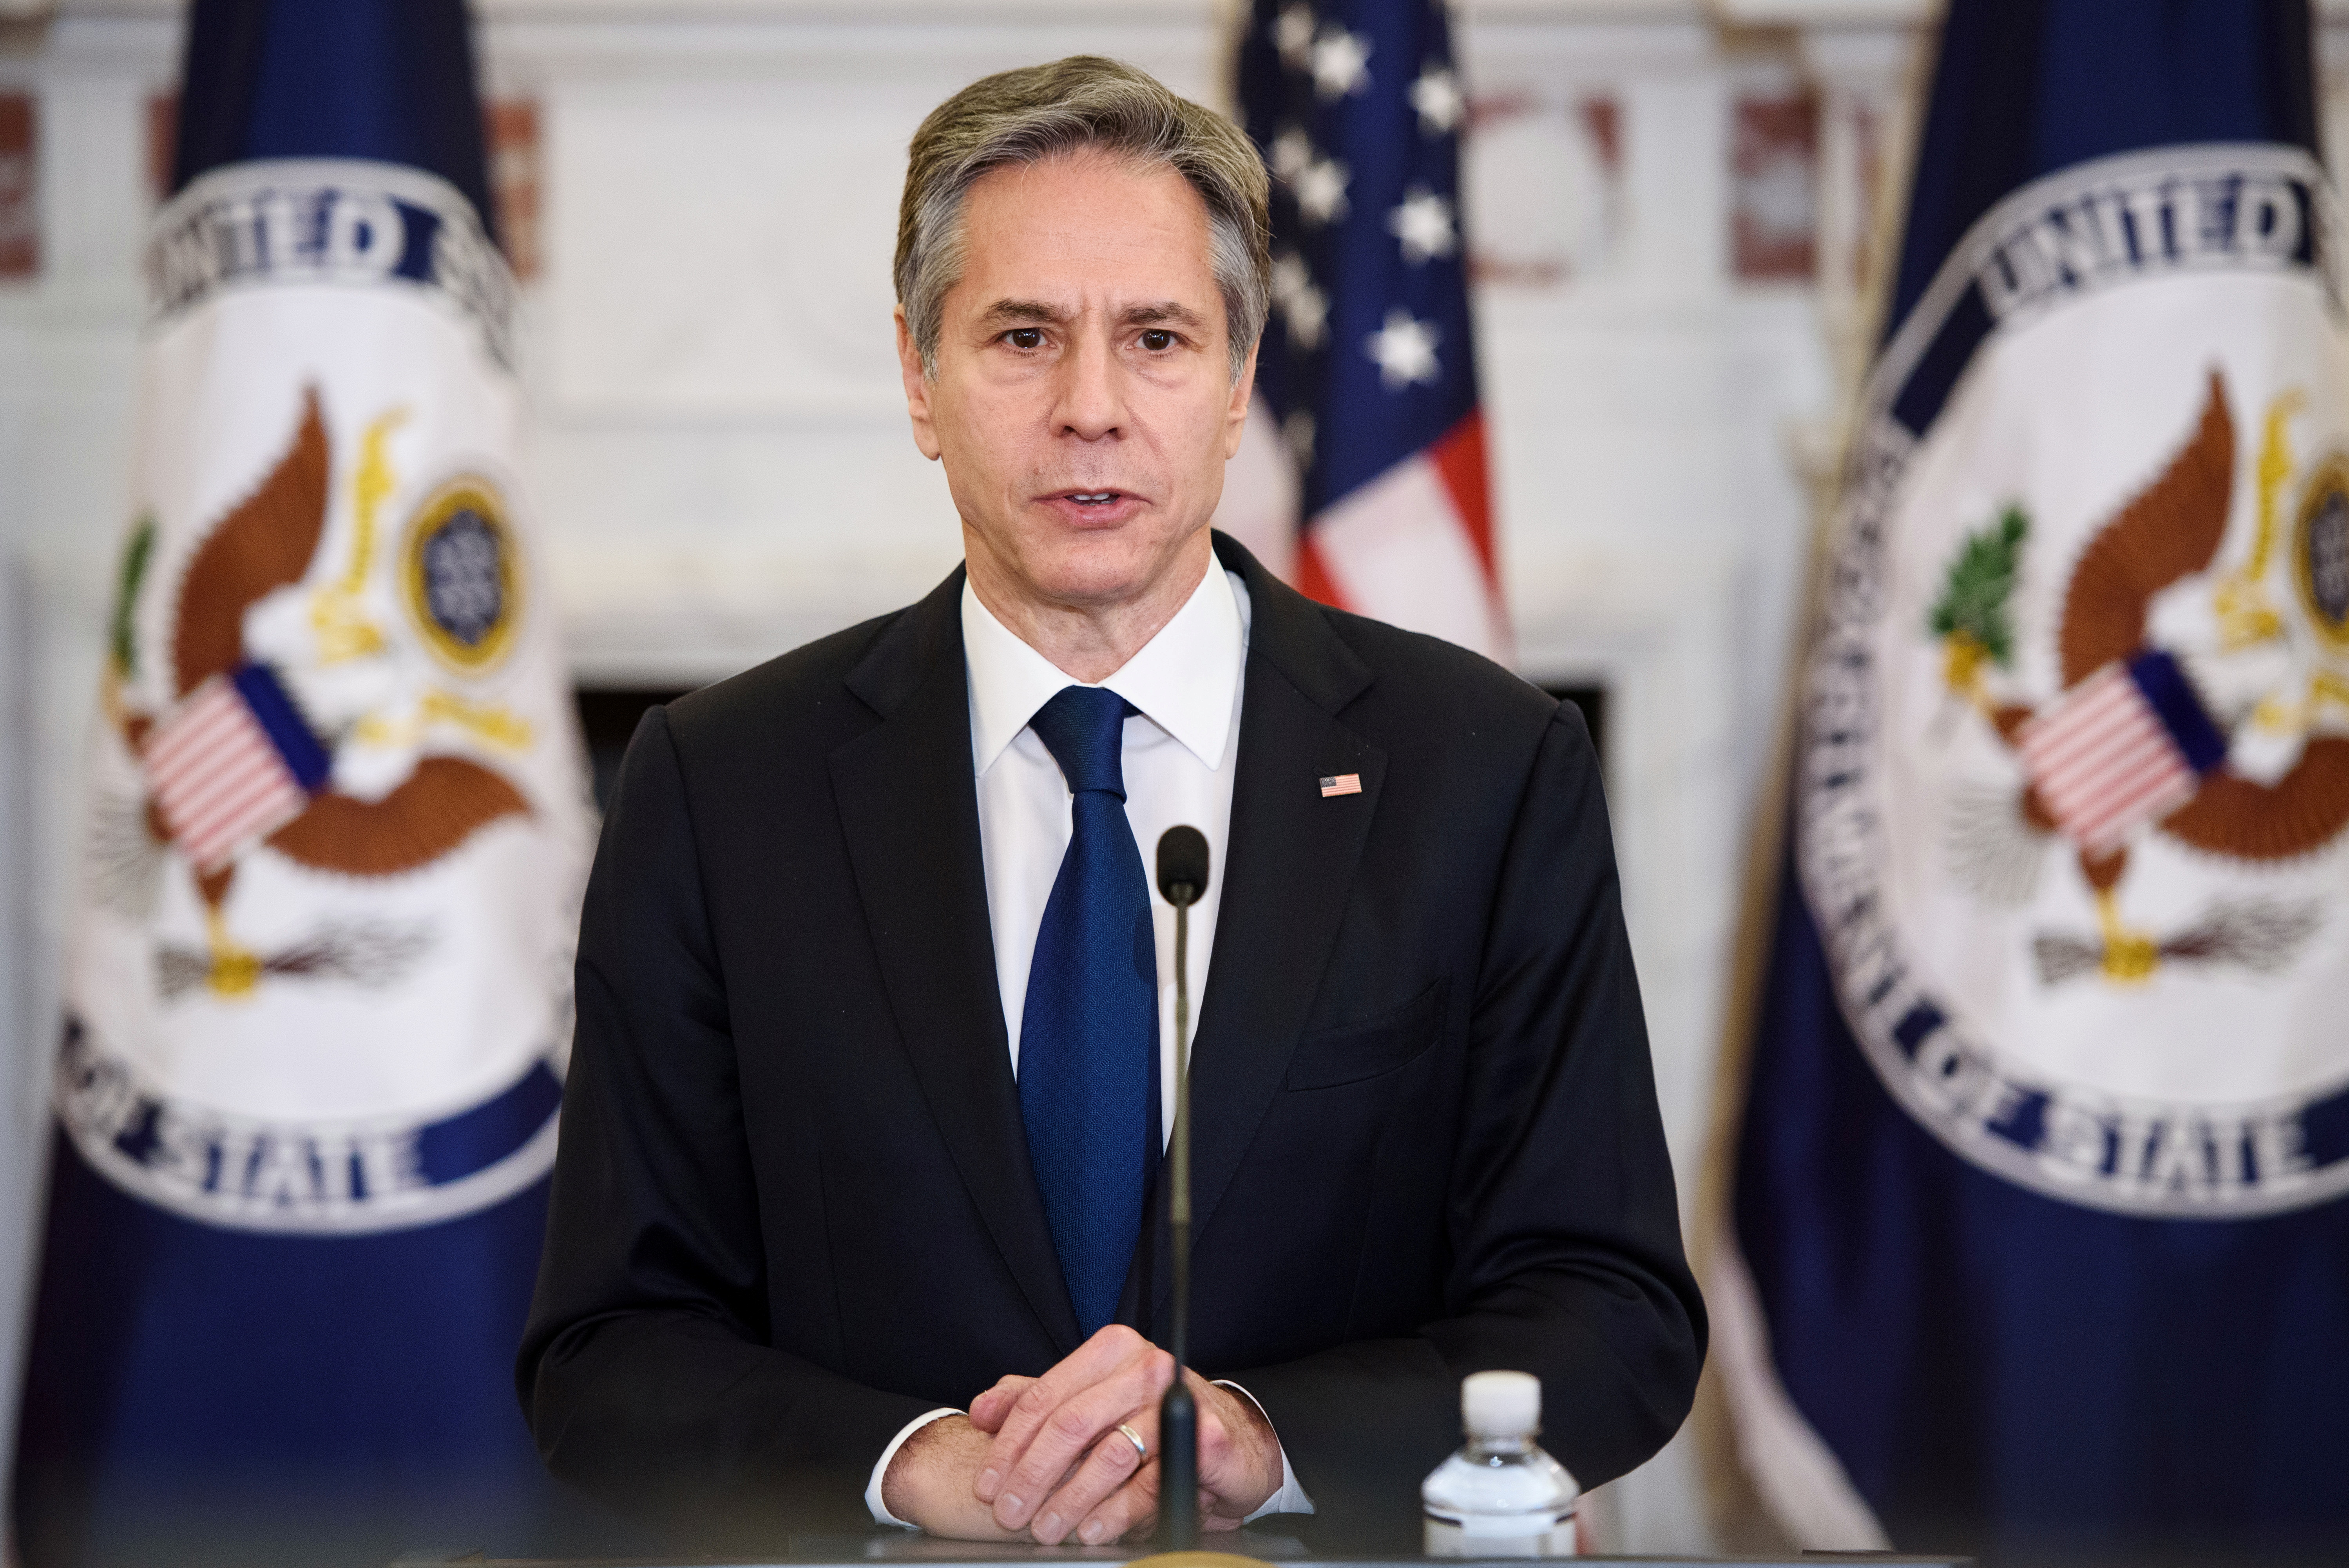 U.S. Secretary of State Antony Blinken speaks during the announcement of former ambassador Gina Abercrombie-Winstanley as the first chief diversity officer in the Benjamin Franklin Room of the State Department in Washington, DC, U.S. April 12, 2021. Mandel Ngan/Pool via REUTERS